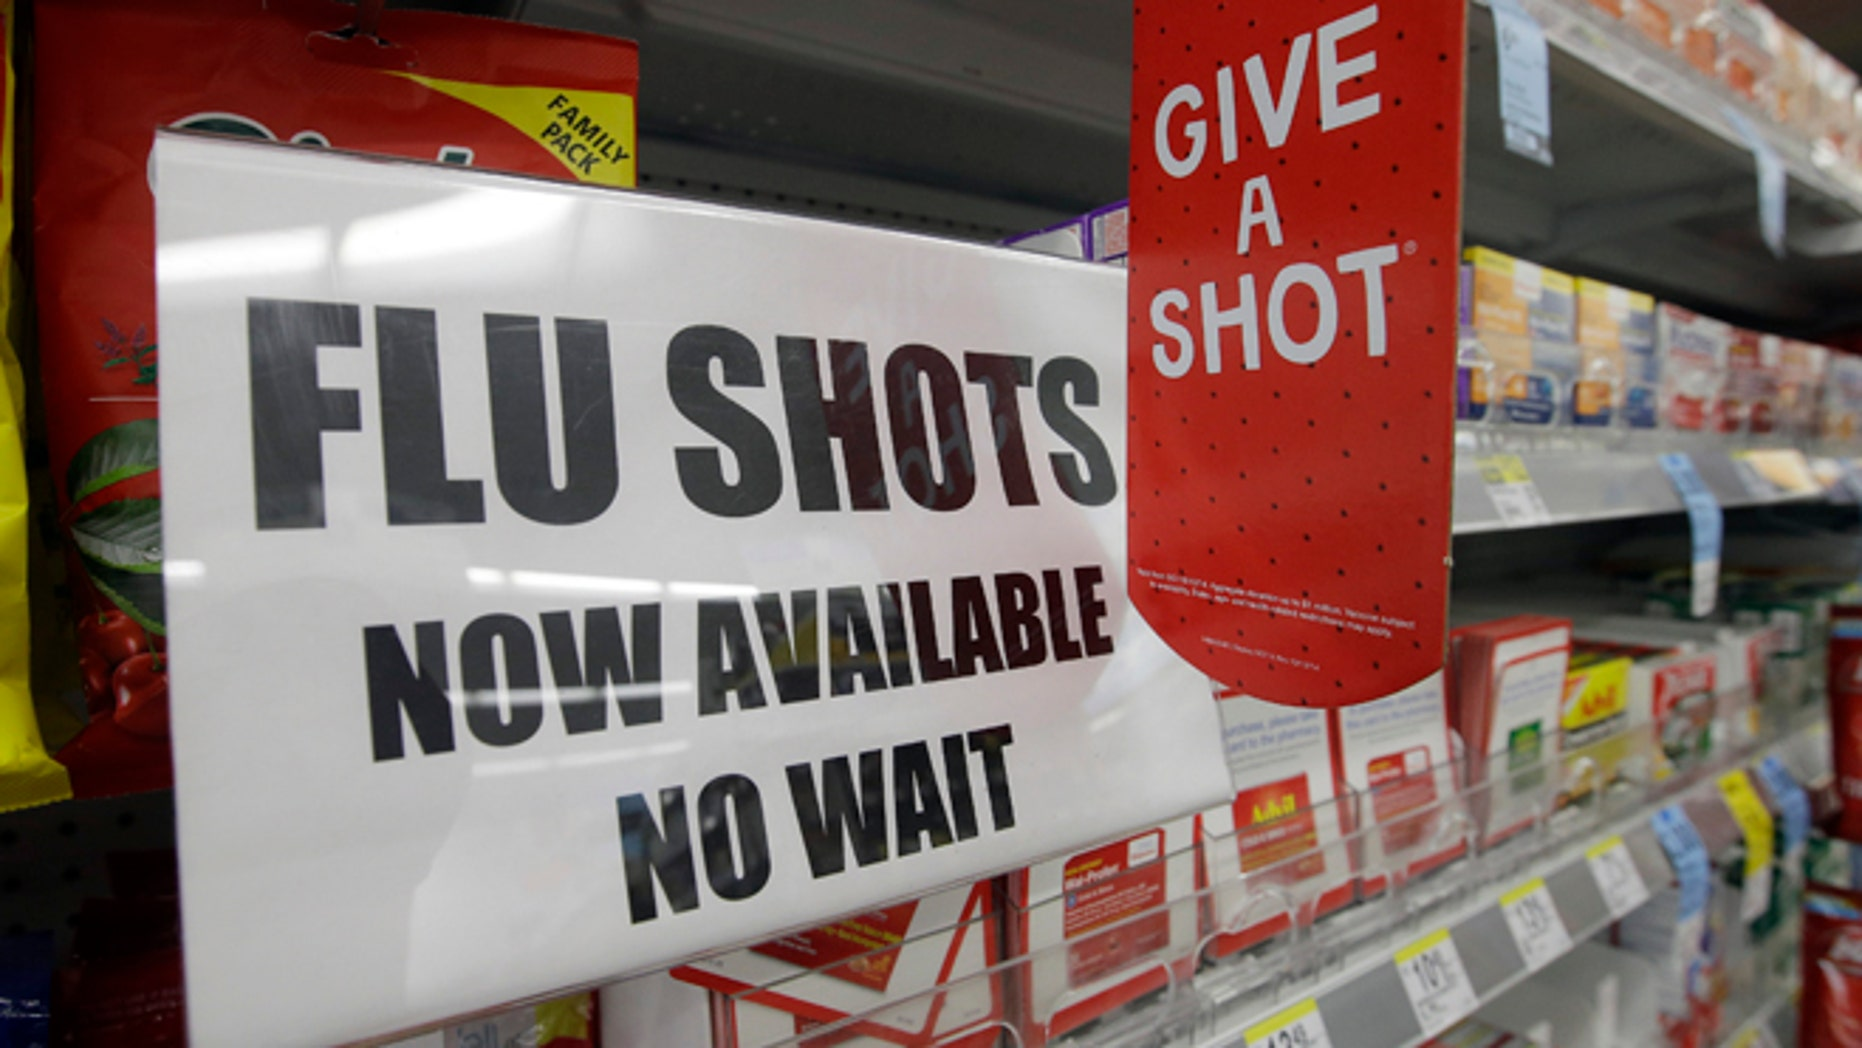 A sign telling customers that they can get a flu shot in a Walgreen store is seen Tuesday, Sept. 16, 2014, in Indianapolis. The nations biggest drugstores and retailers are grabbing larger chunks of the immunization market, giving customers more convenient options to protect themselves against the flu, pneumonia and more than a dozen other illnesses. (AP Photo/Darron Cummings)